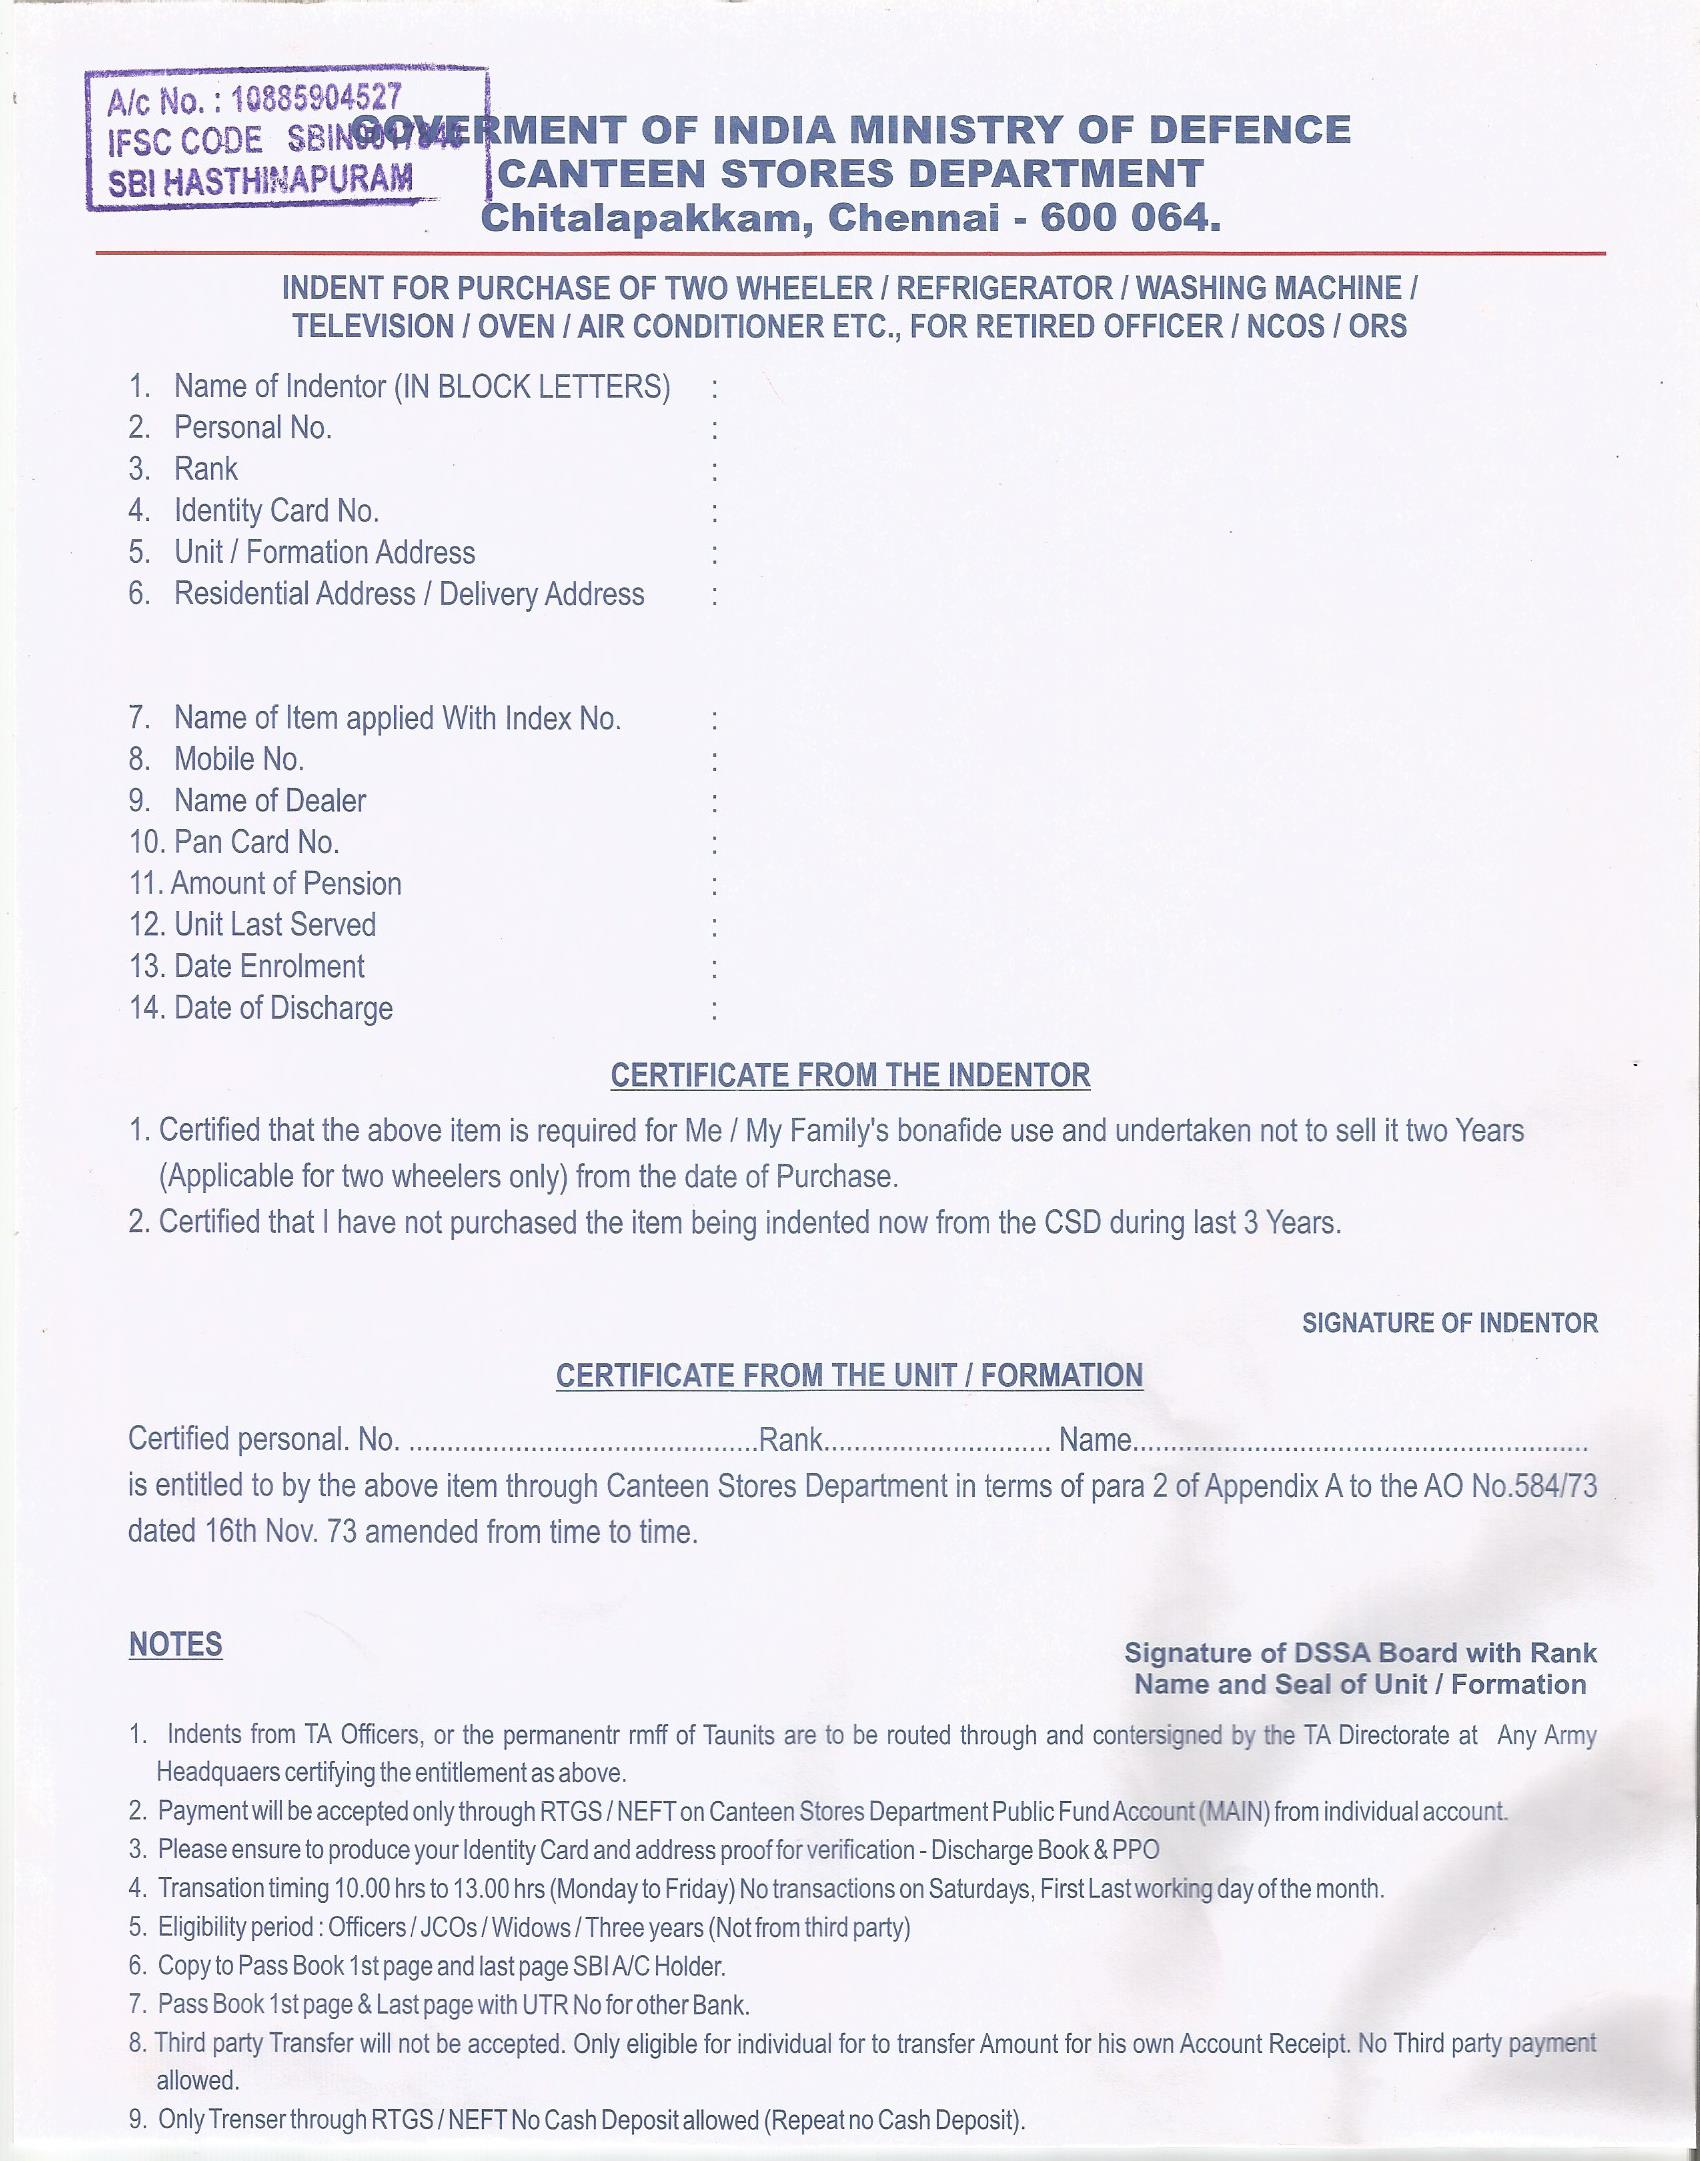 Download CSD Application Form for Service Personnel/NCOS/ORs